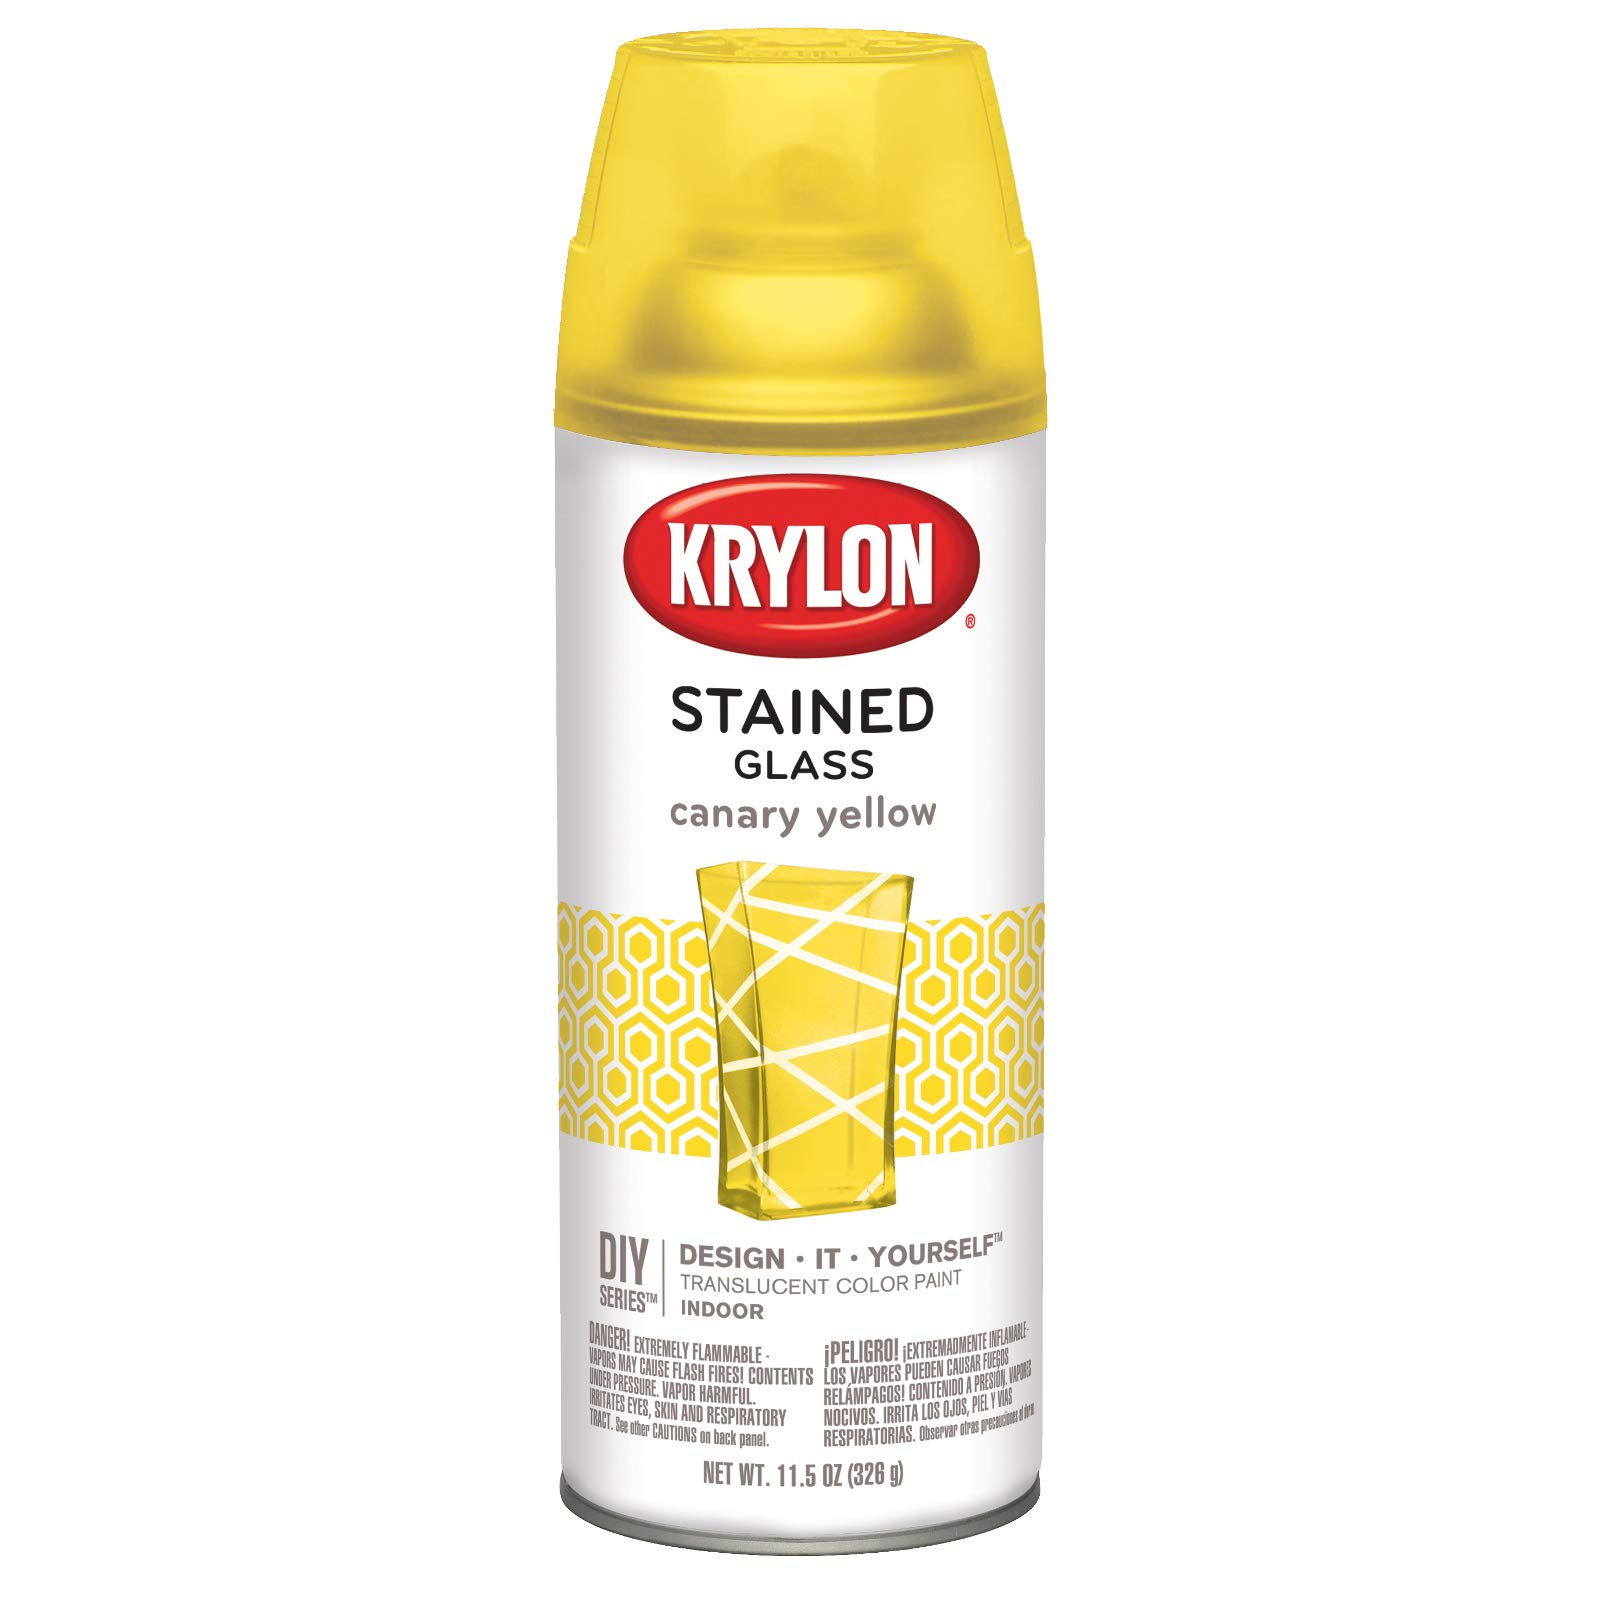 Krylon Stained Glass Paint.Details About Krylon Stained Glass Canary Yellow Aerosol Spray Paint 11 5oz Translucent Paint